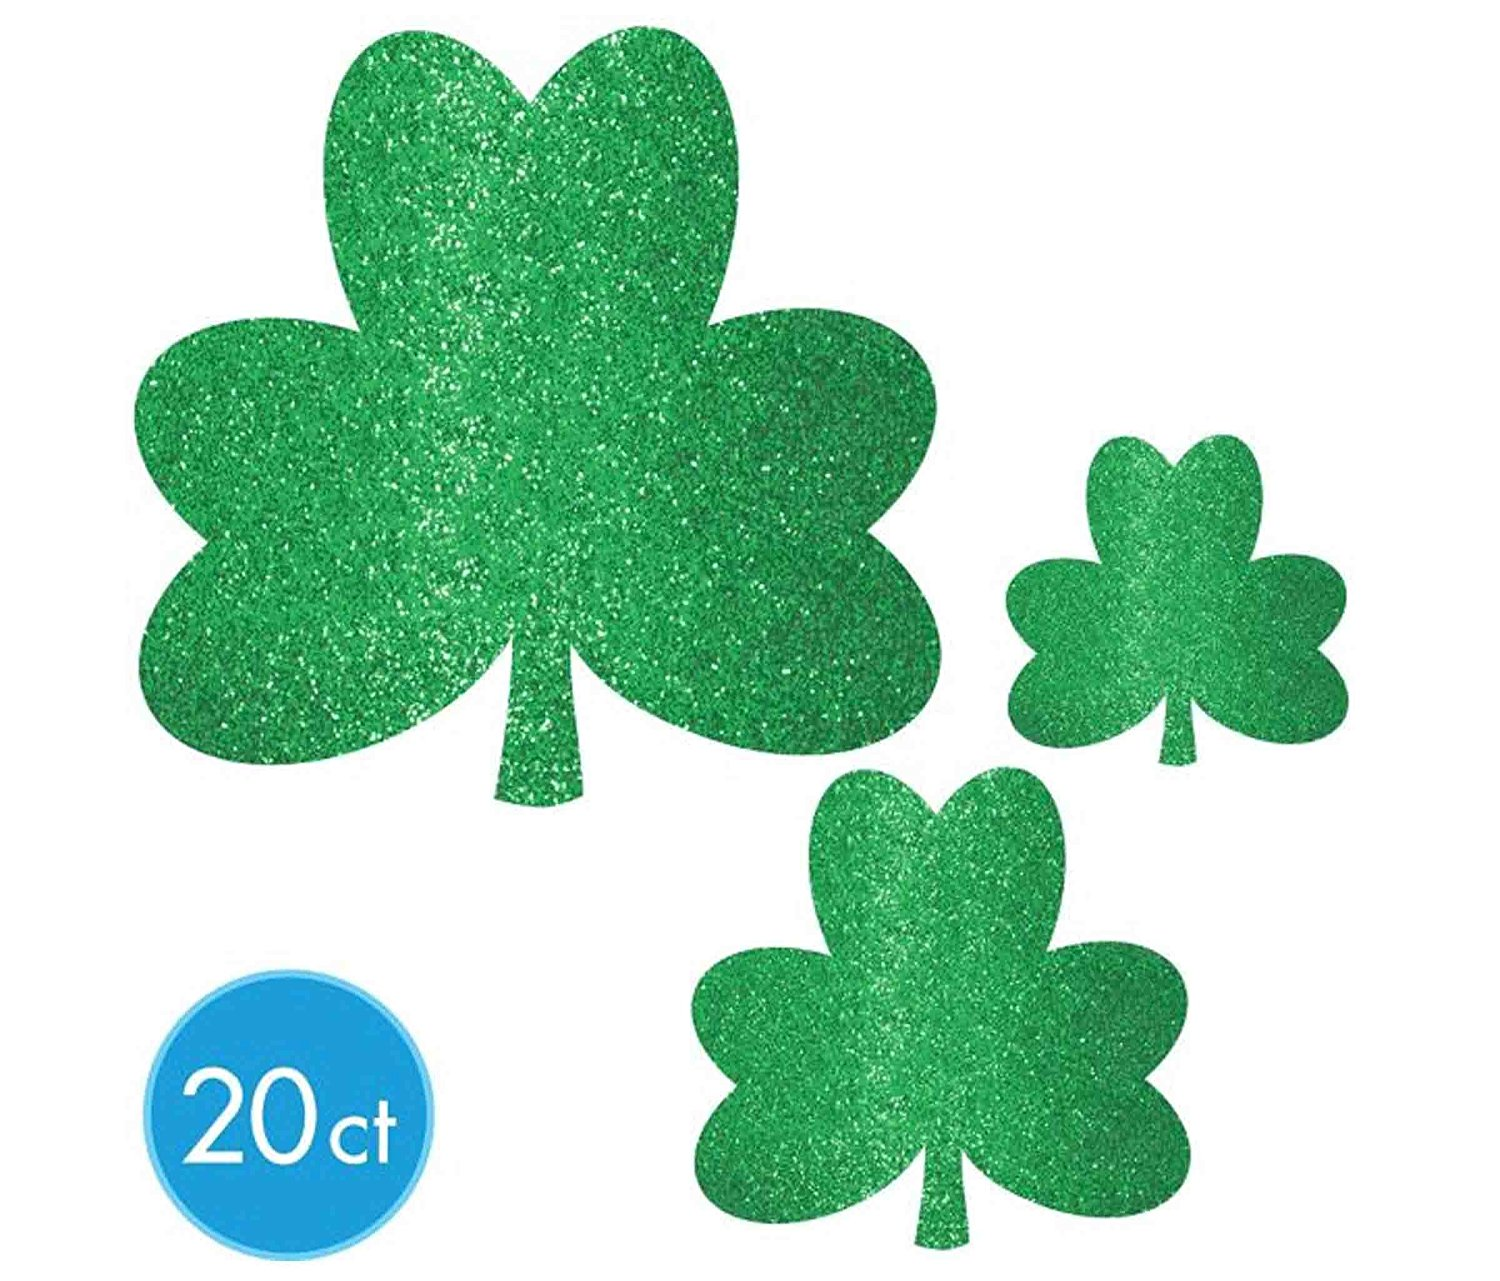 Mozlly Multipack - Amscan St Patricks Day Glitter Shamrock Mega Value Pack Cutouts - 4.5, 6.5 and 10.5 inch - (20pc Set) (Pack of 3)